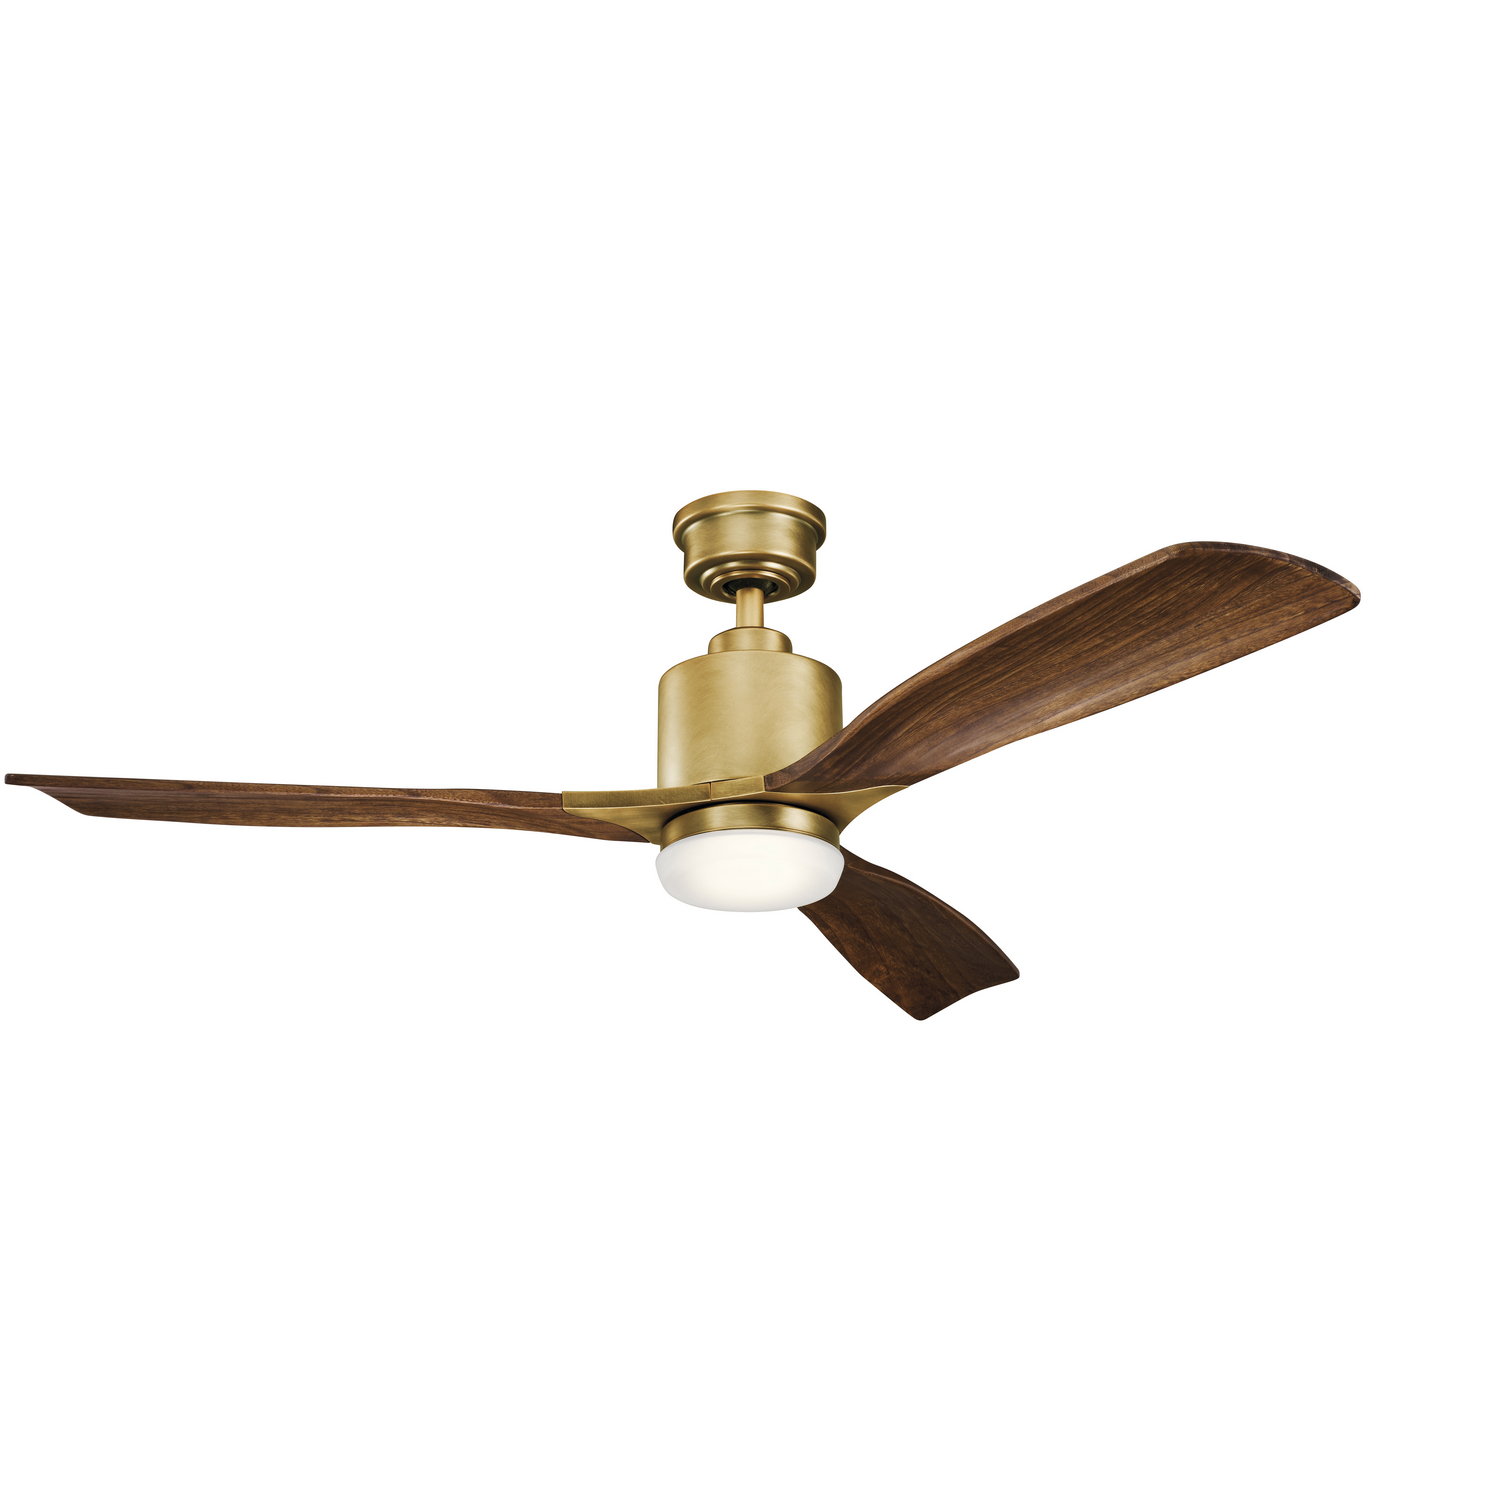 52 inchCeiling Fan from the Ridley II collection by Kichler 300027NBR